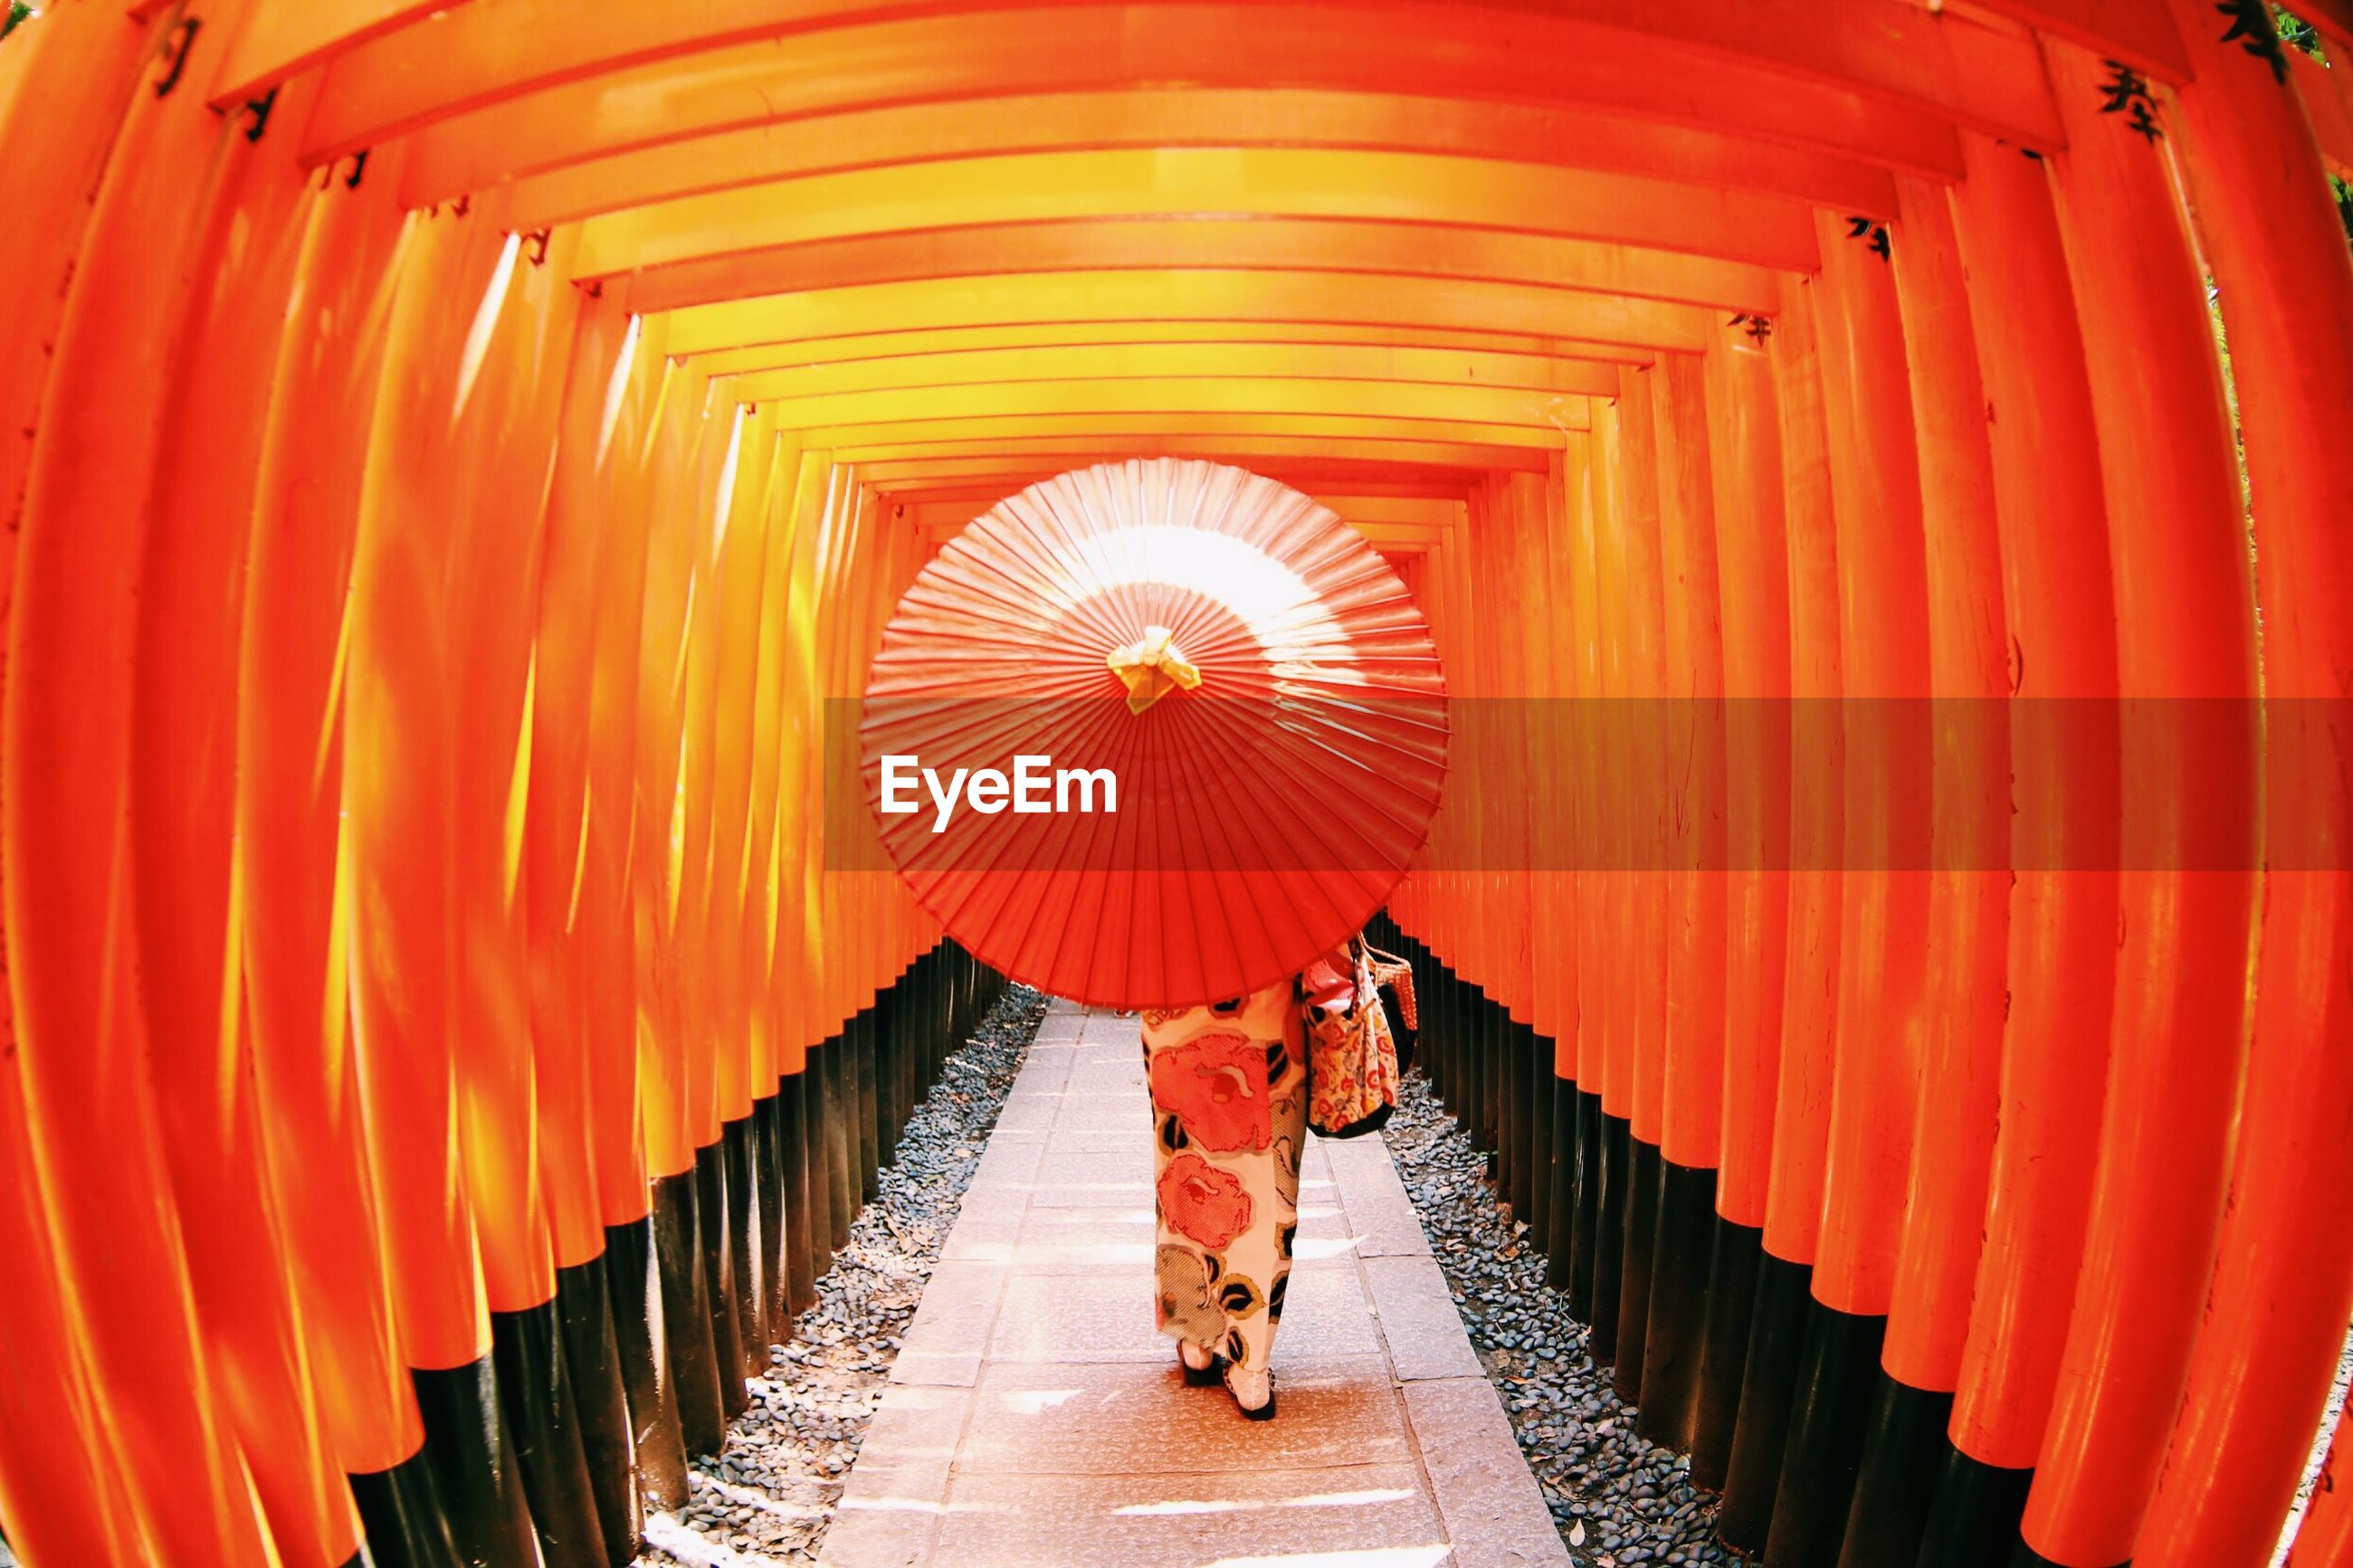 indoors, lifestyles, red, full length, leisure activity, the way forward, steps, men, in a row, orange color, rear view, walking, ceiling, built structure, architecture, person, steps and staircases, standing